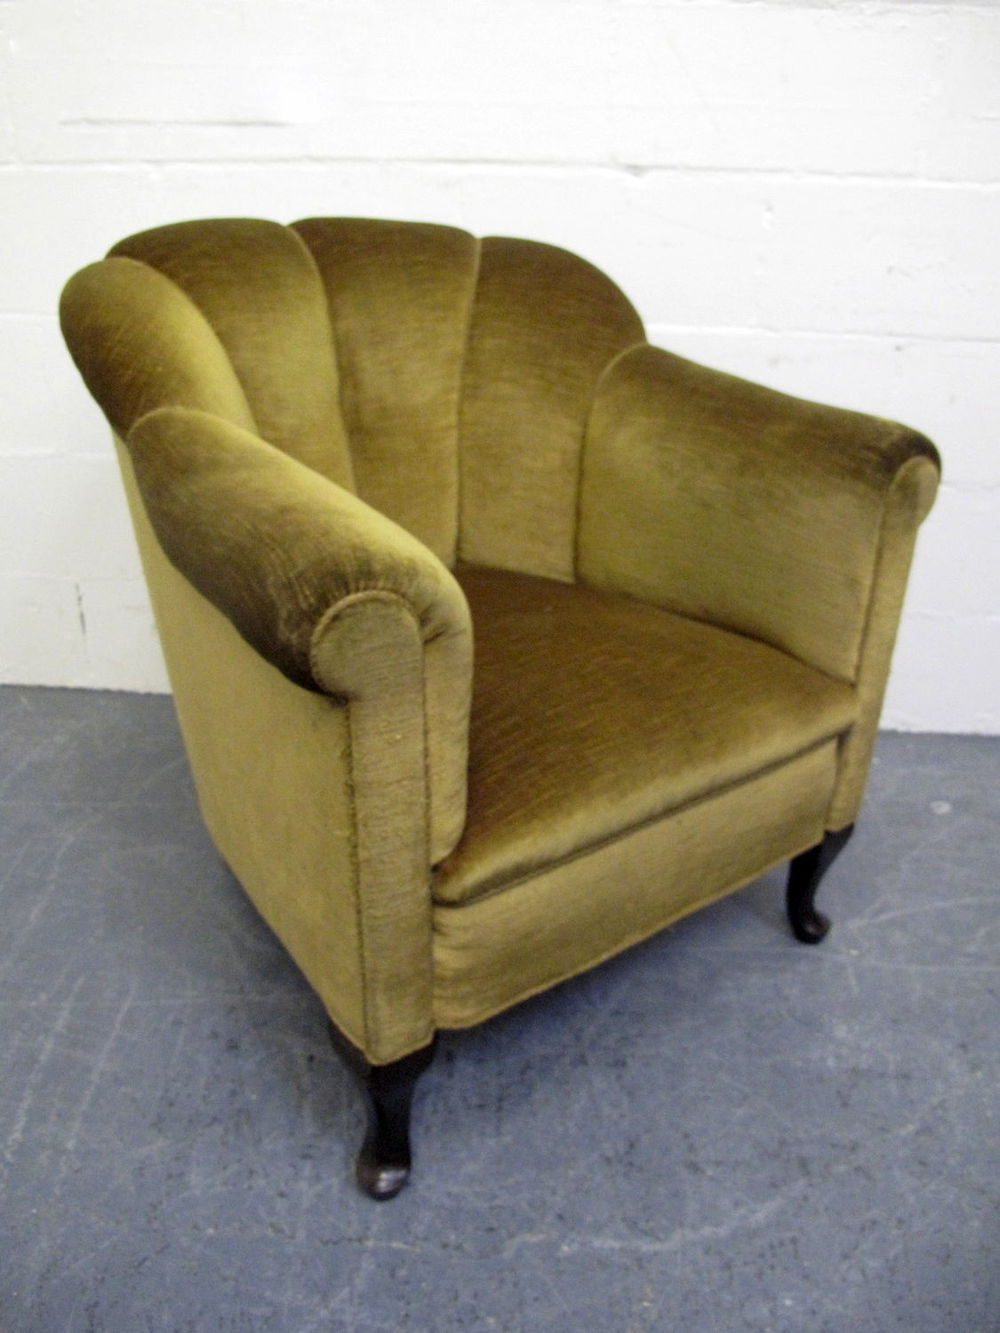 The Hunt For The Perfect Vintage Armchair Sarah Akwisombe